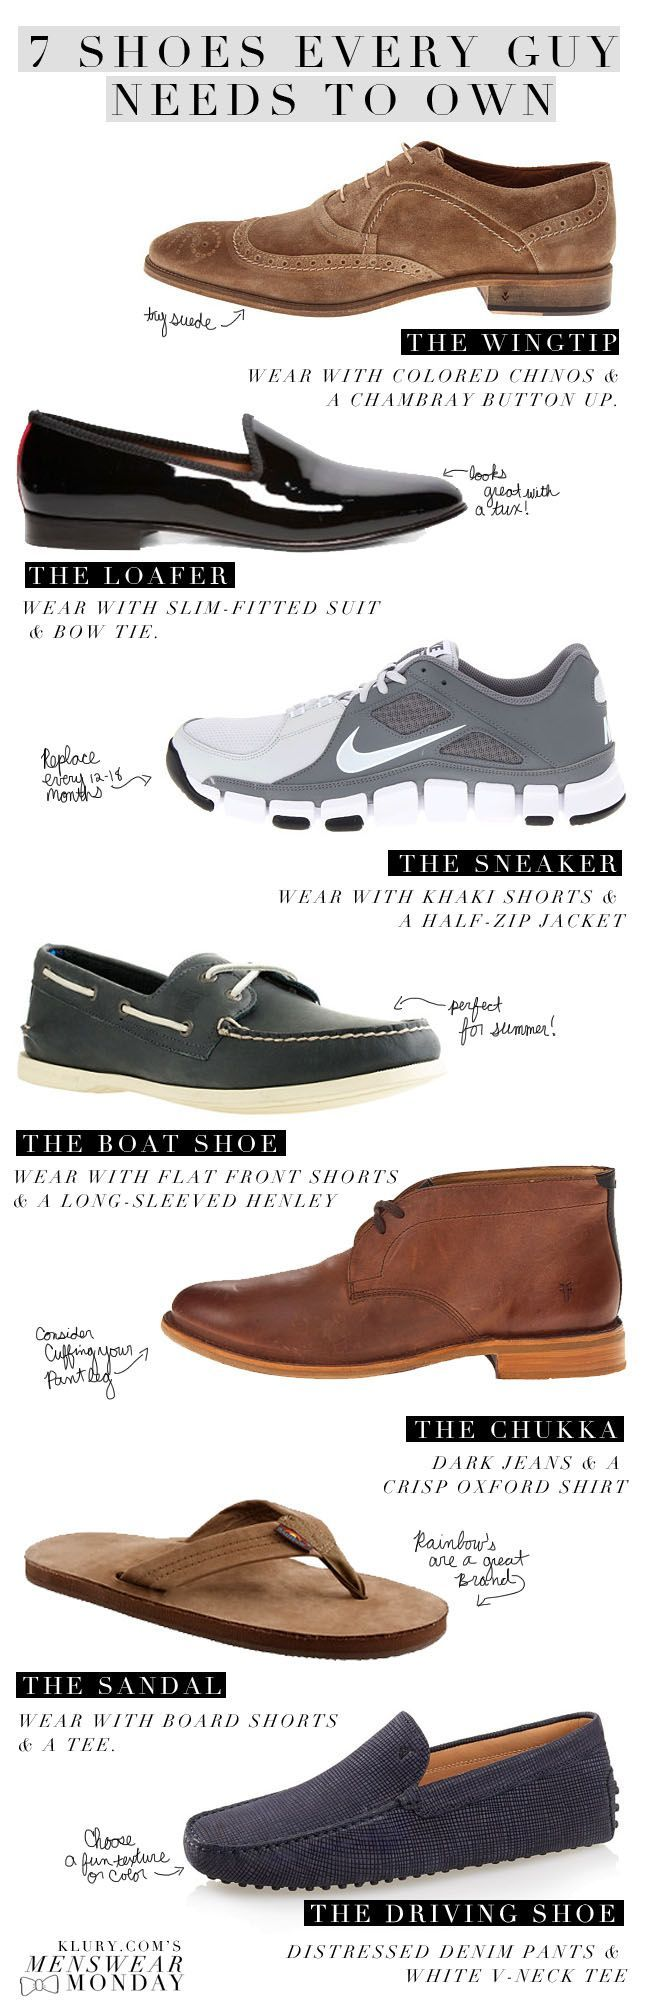 Fun Fashion Gallery » Blog Archive » Menswear Monday 7 Shoes Every Guy Needs